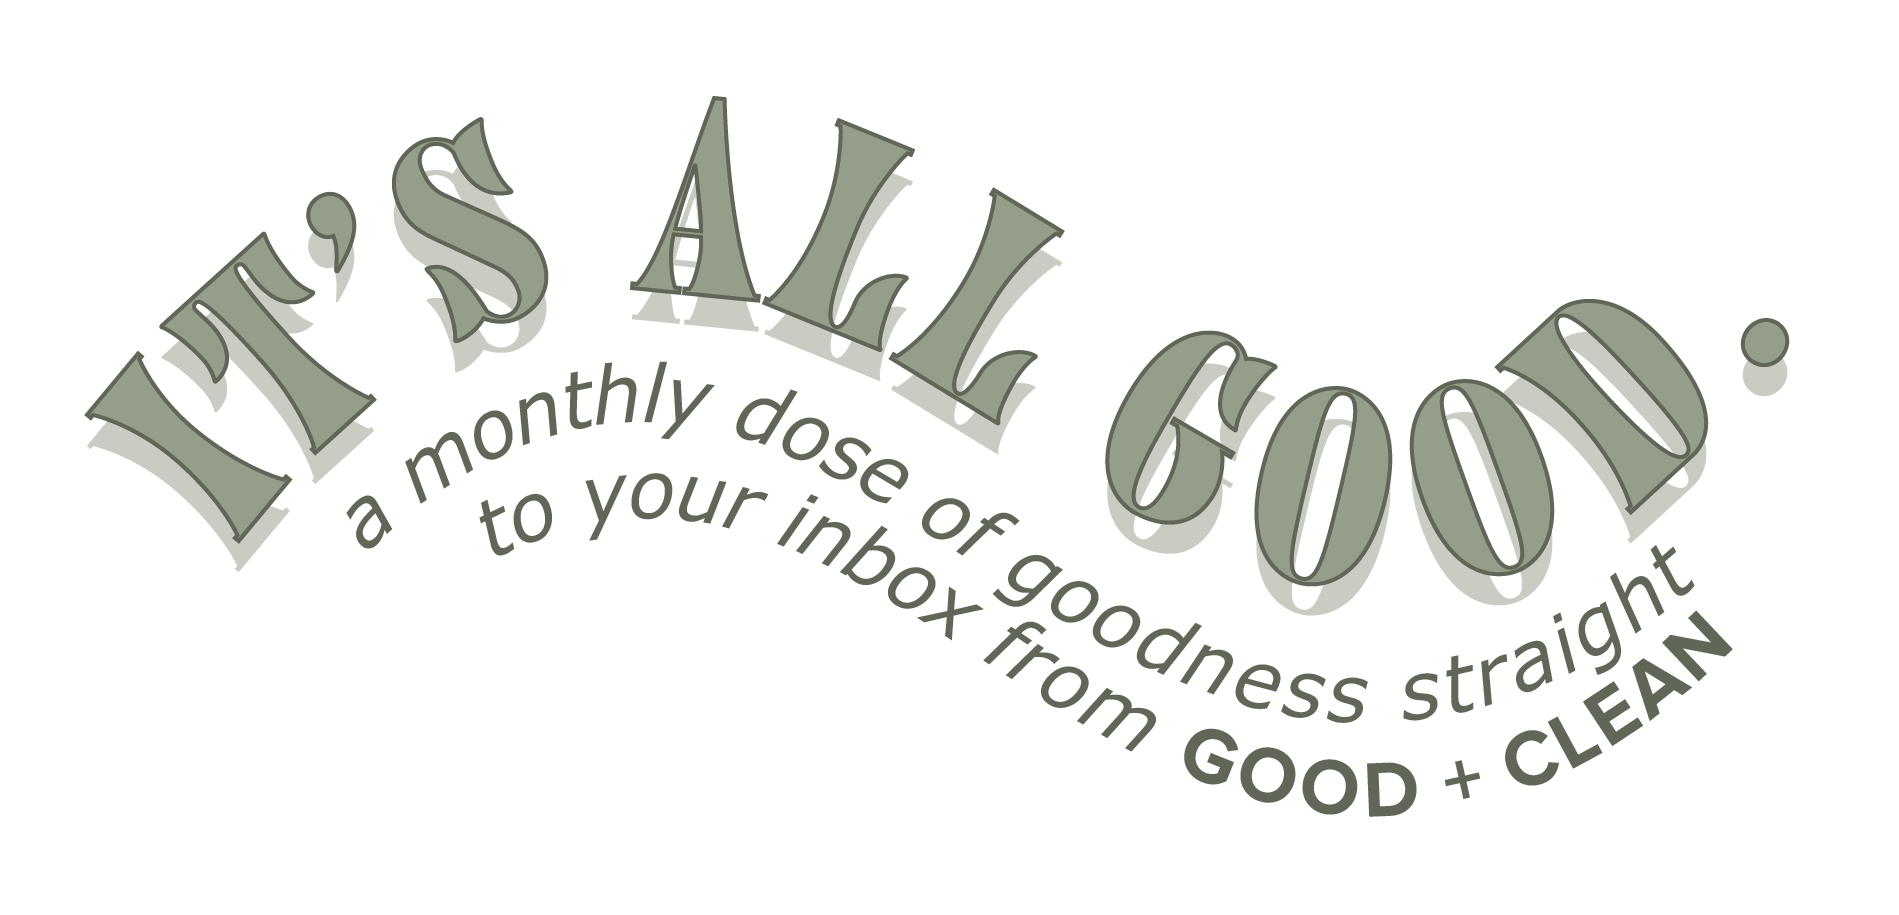 It's All Good - a monthly dose of goodness straight to your inbox from Good and Clean